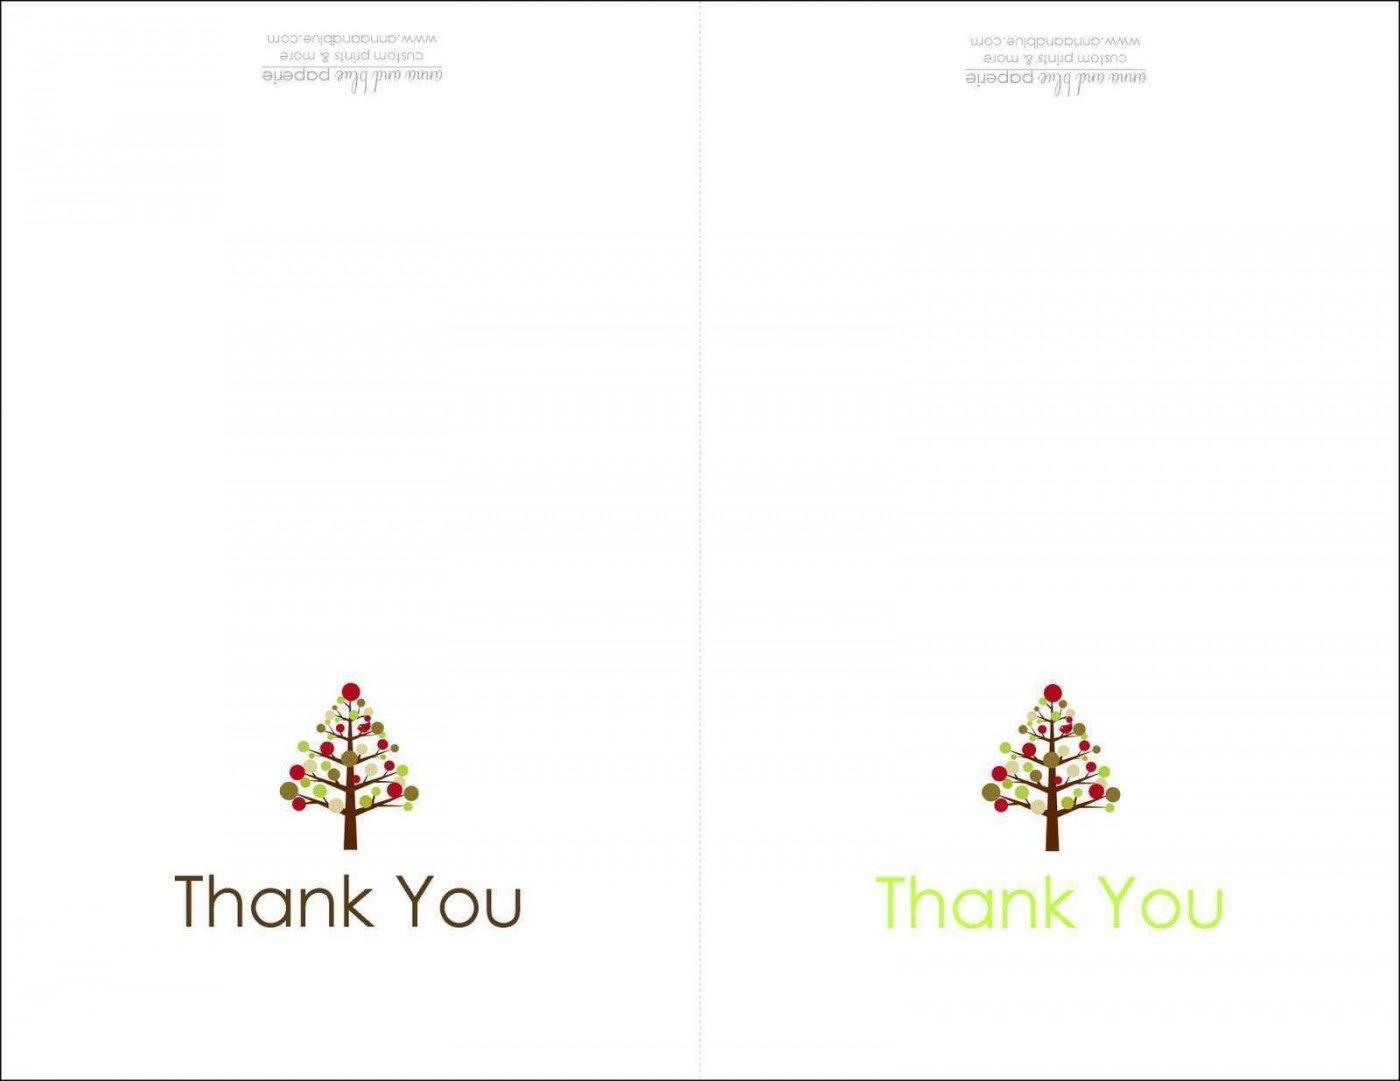 004 Dreaded Thank You Note Card Template Word Photo 1400